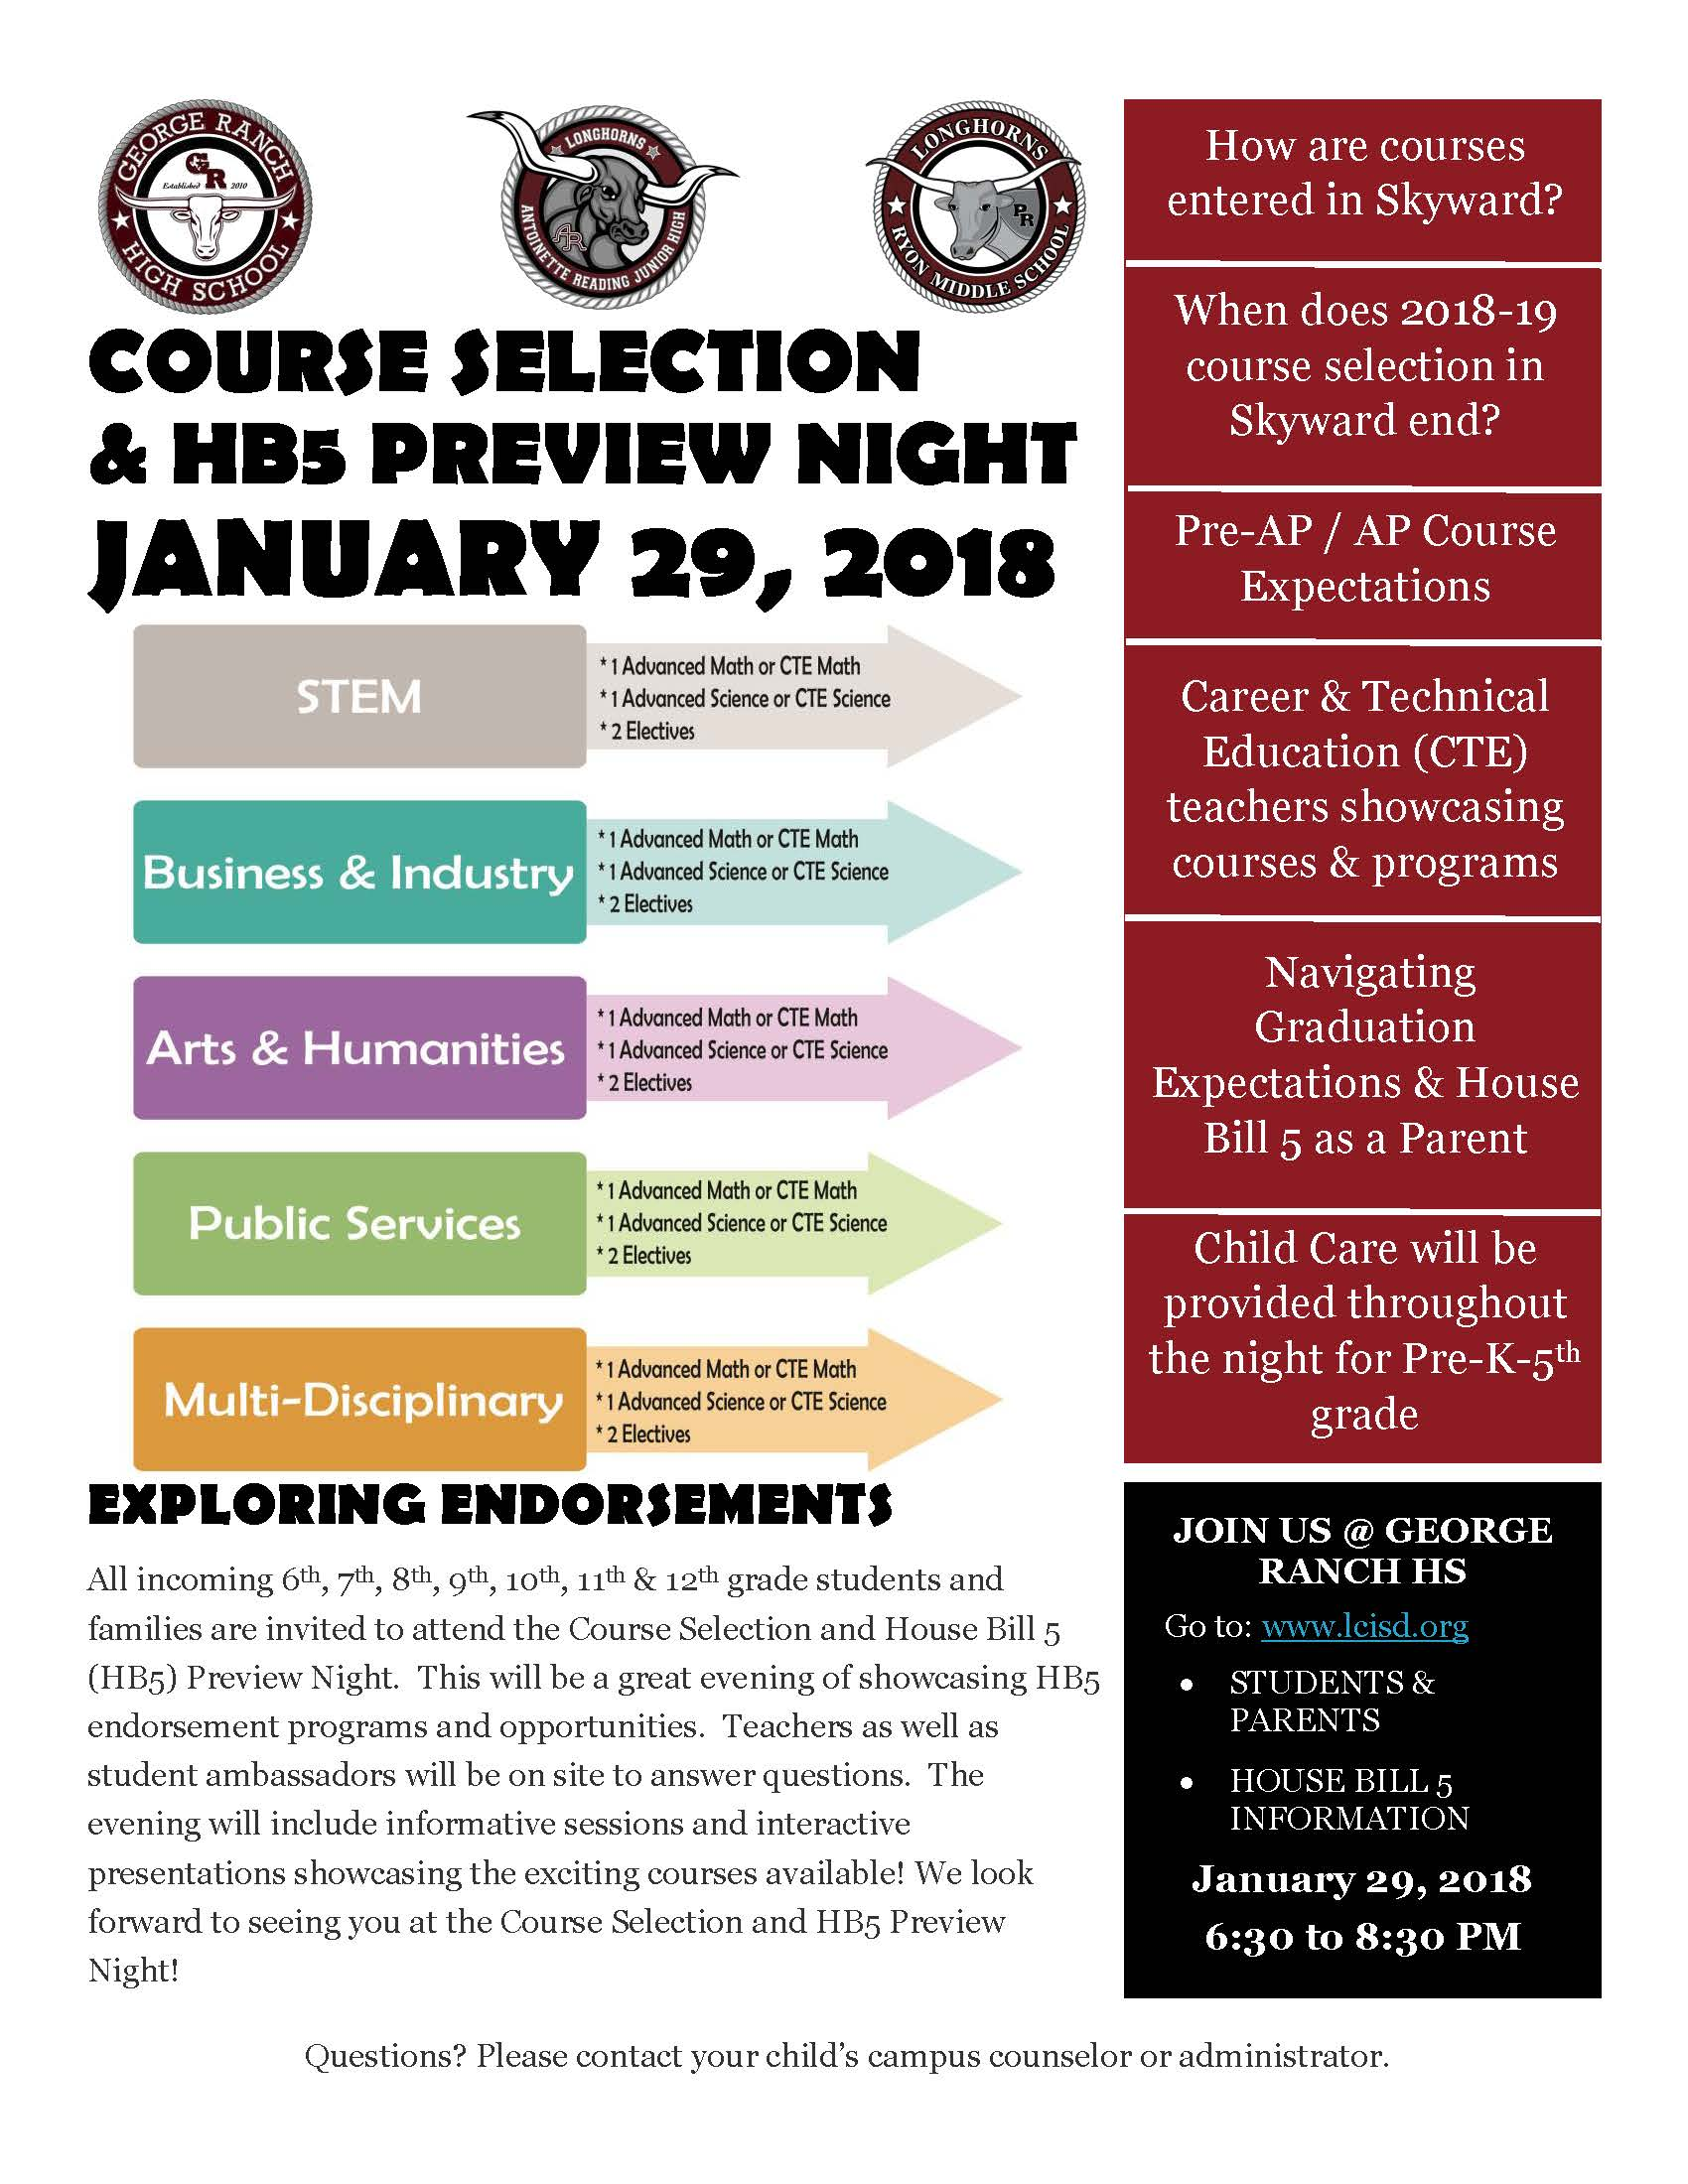 2018 HB5 Course Selection Preview Night Flyer